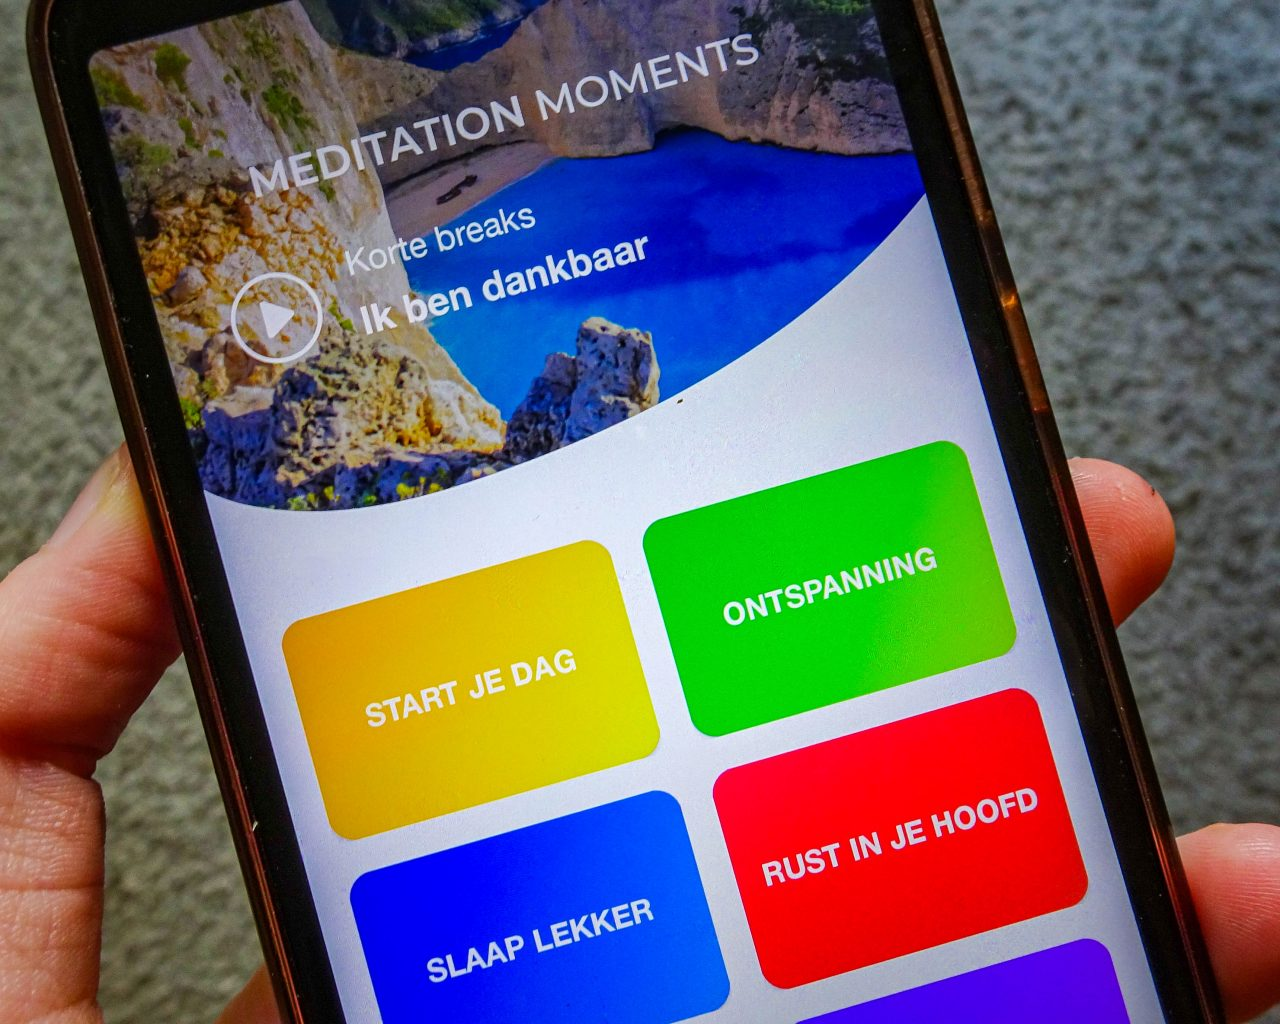 Meditatie-apps-meditation-moments-menu